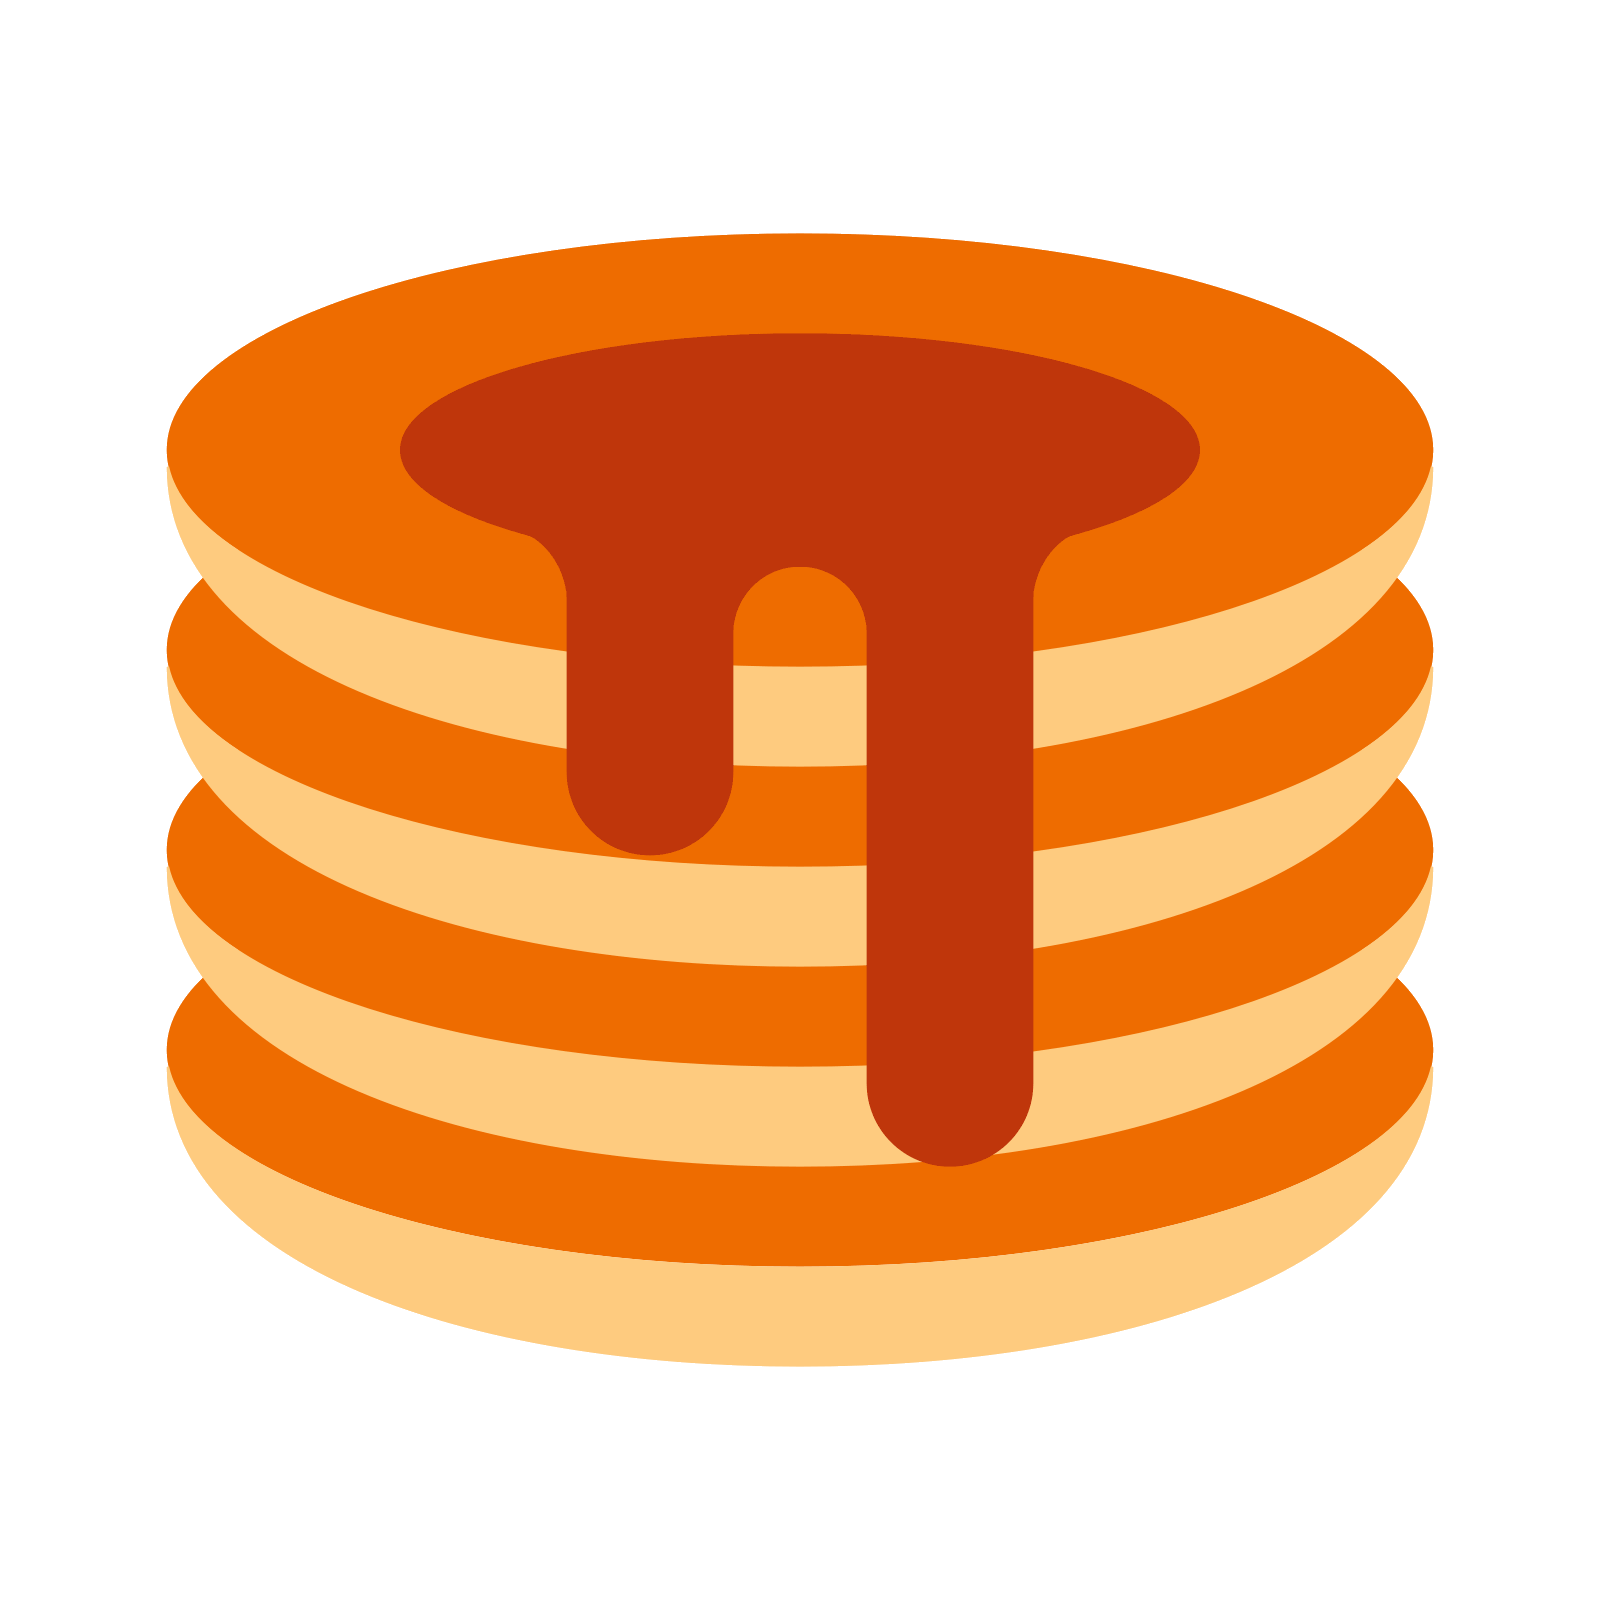 Clipart coffee pancake. Icon free download png